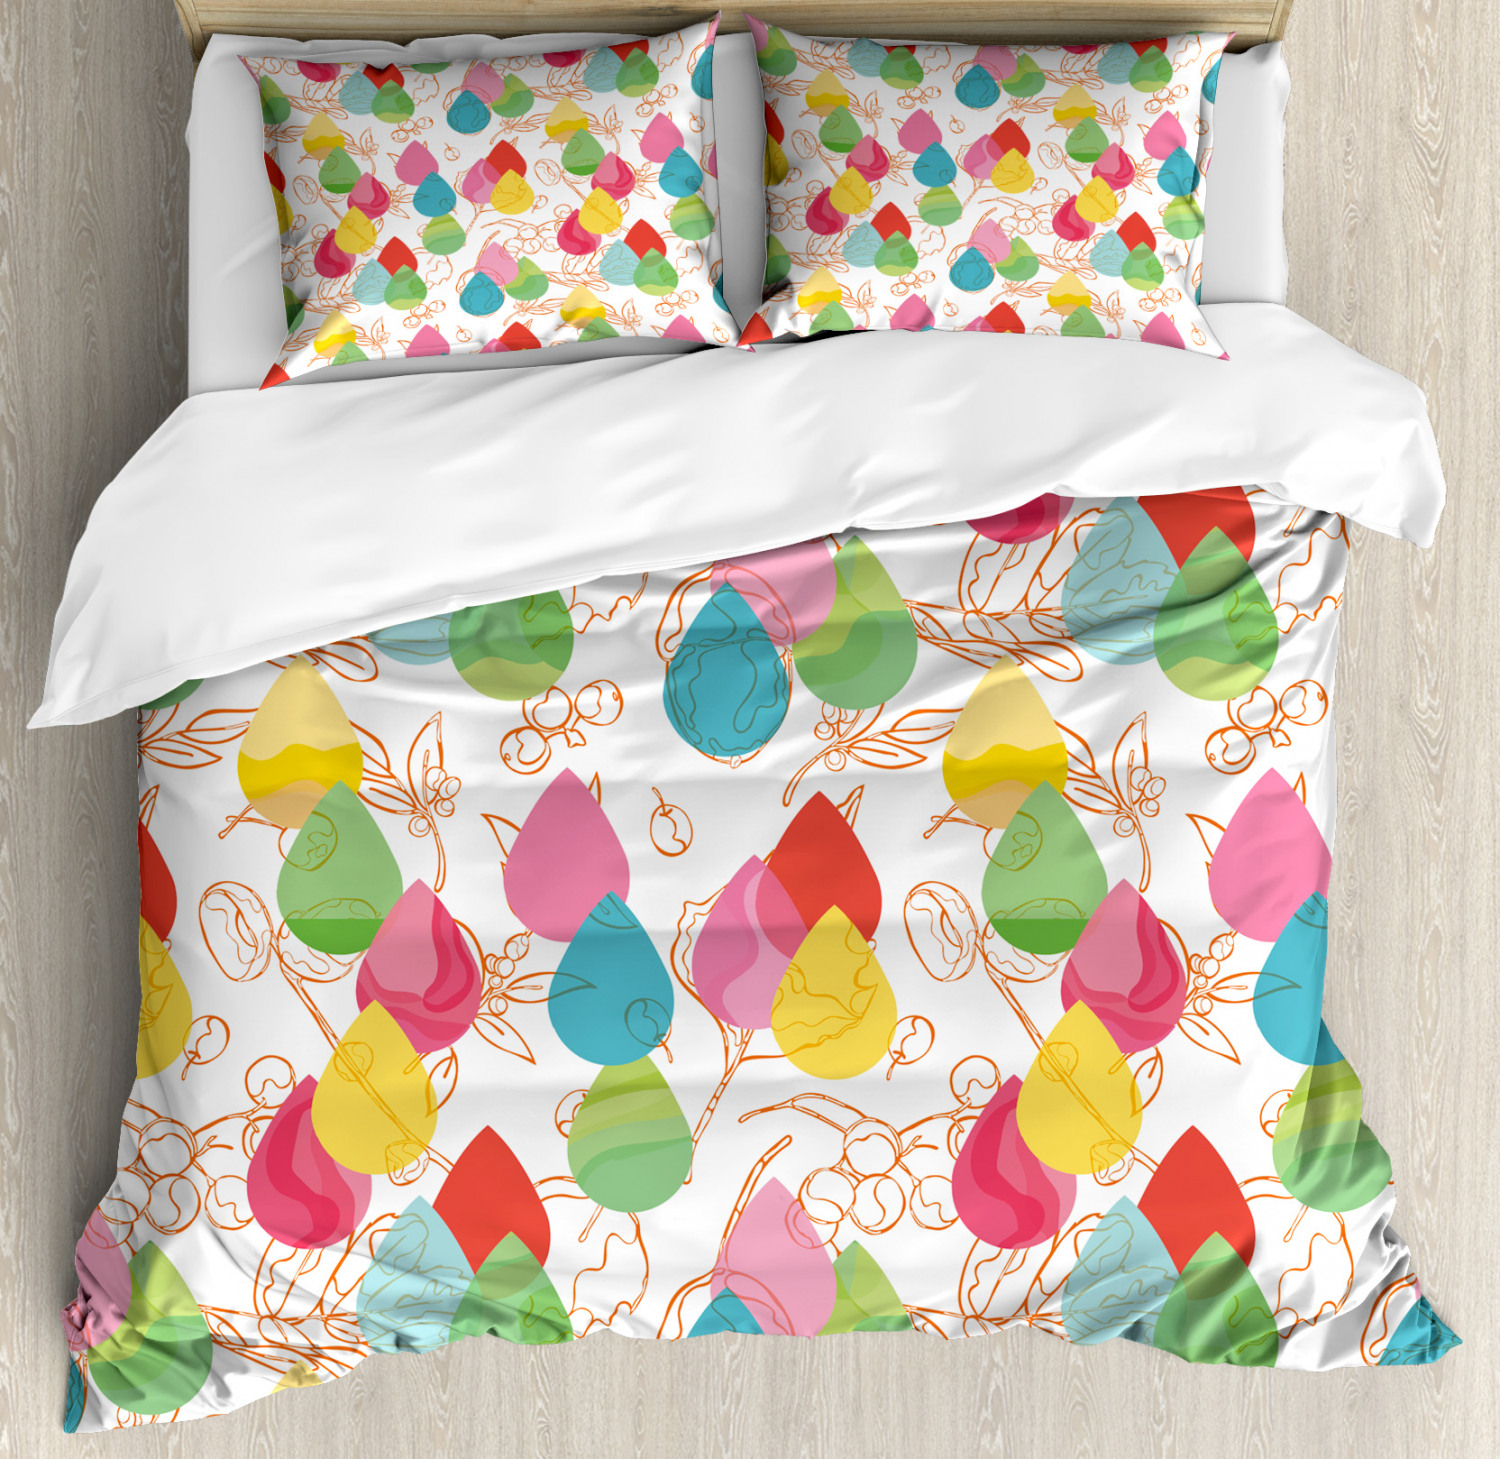 Abstract Duvet Cover Set with Pillow Shams Cherry Branches Lines Print